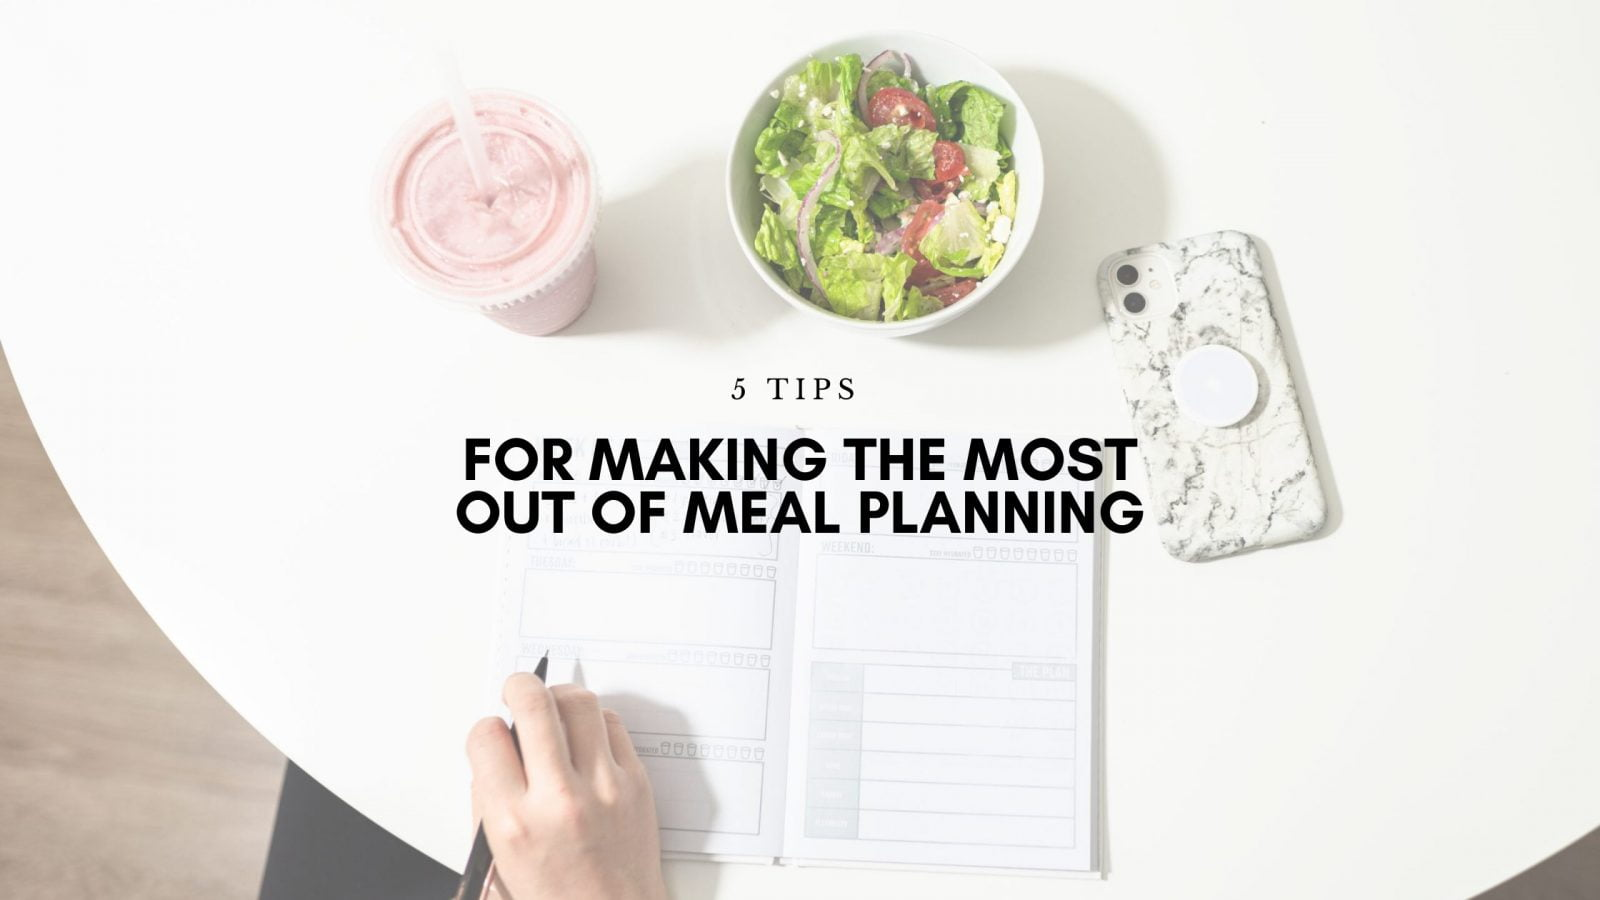 image showing a woman writing in a journal to depict meal planning